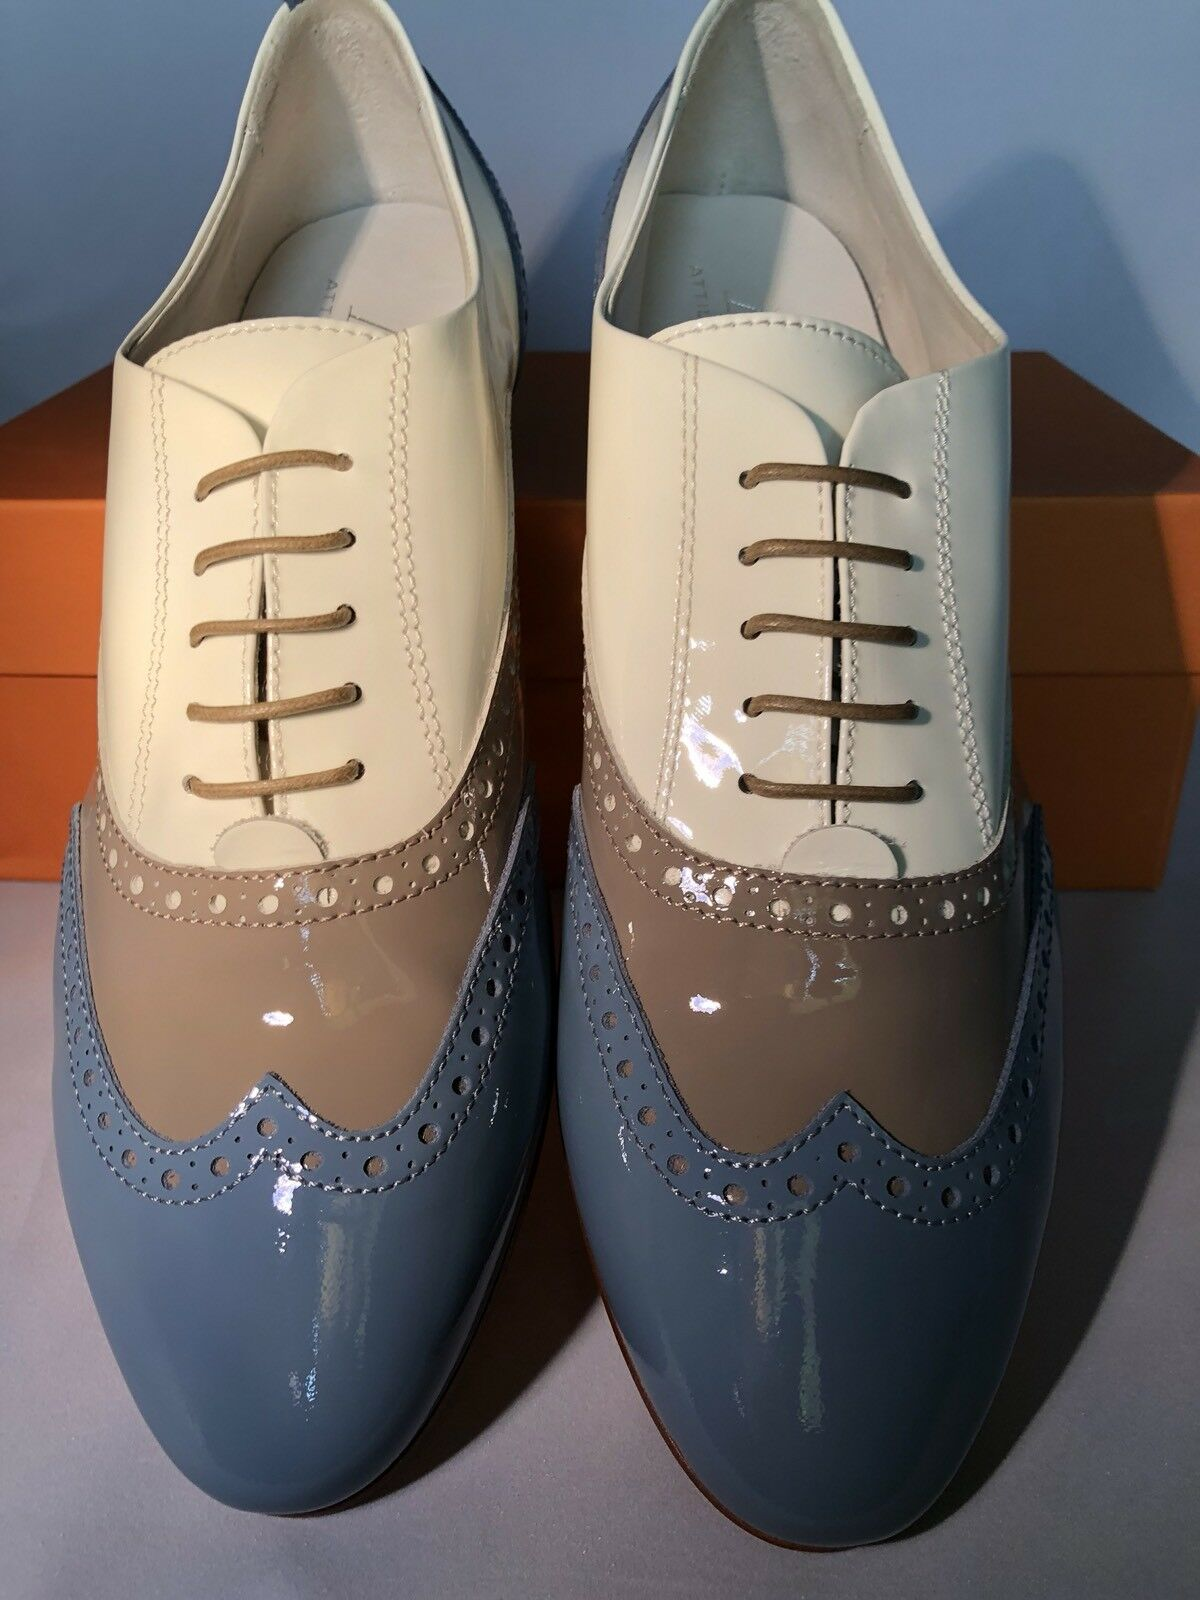 WOMEN'S AGL NEW    TRI COLOR PATENT LEATHER LEATHER PATENT OXFORD Schuhe ITALY SIZE 40 NIB be83f8